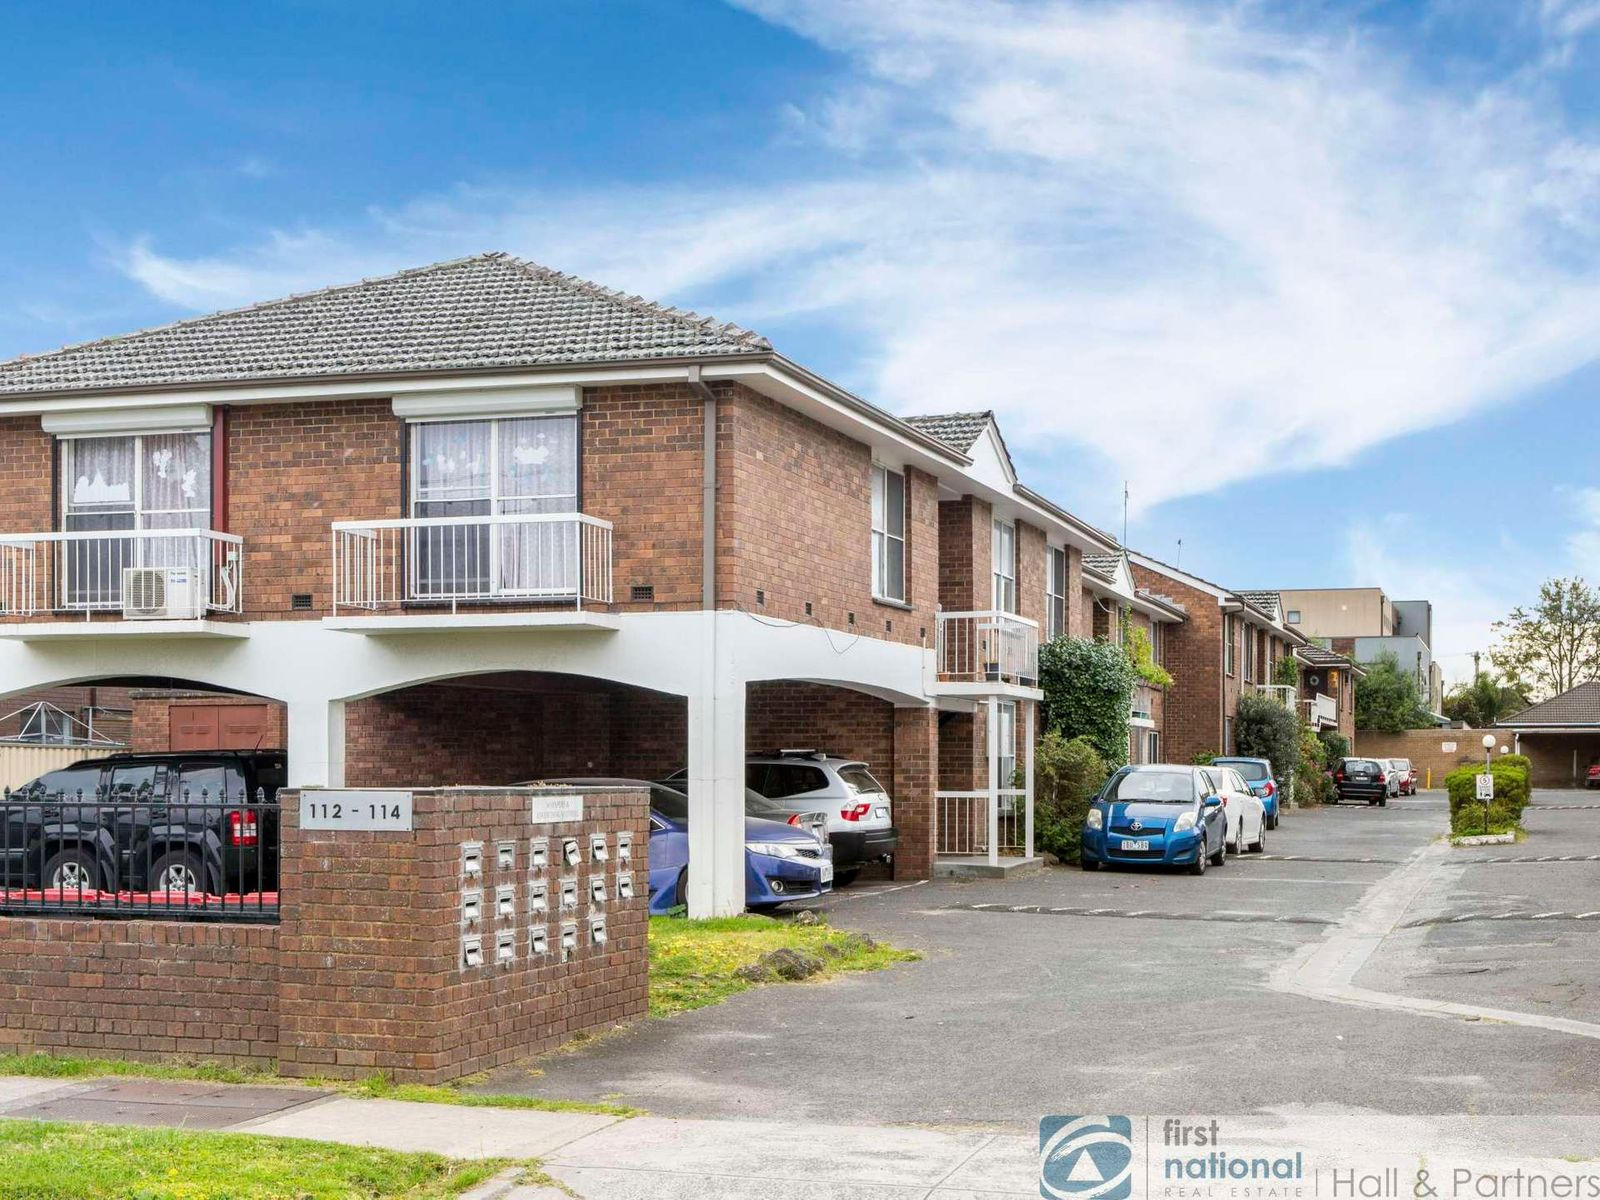 28/112-114 Princes Highway, Dandenong, VIC 3175